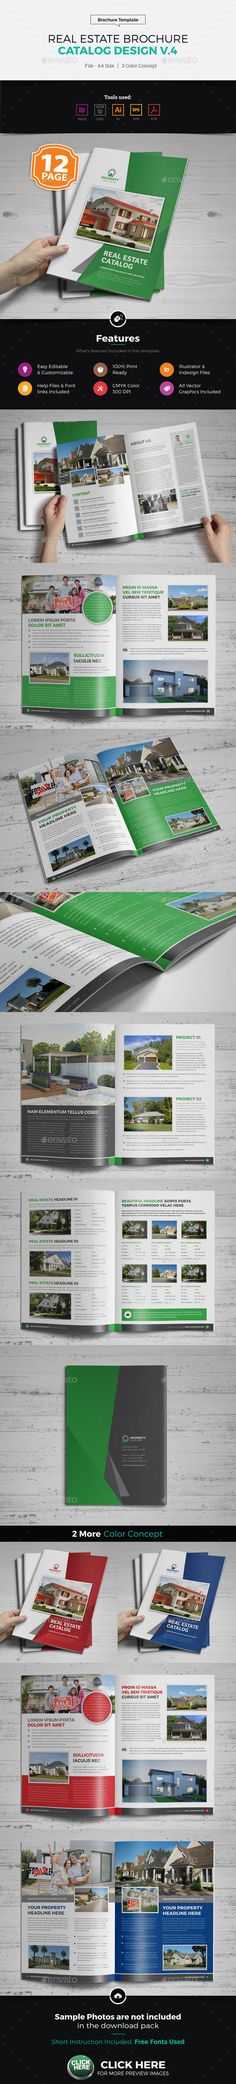 Real Estate Agency Brochure Catalog v1 Real estate agency - sample real estate brochure